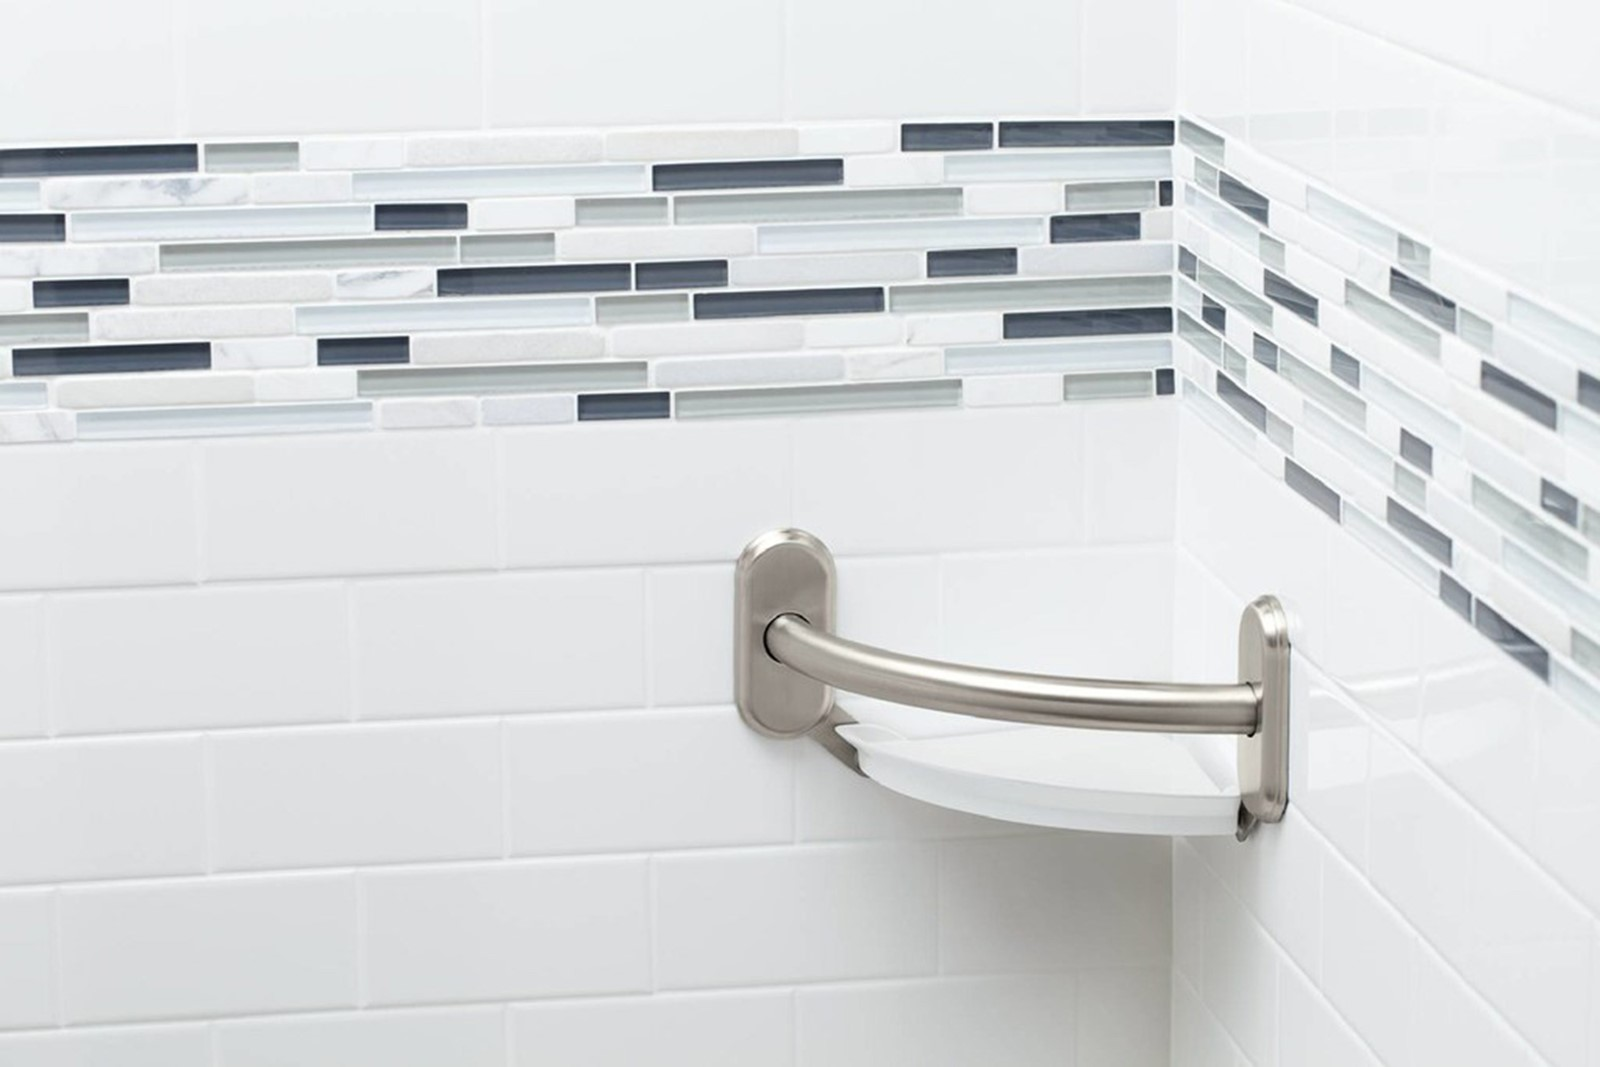 Fixing bathroom tile not always a simple process - North